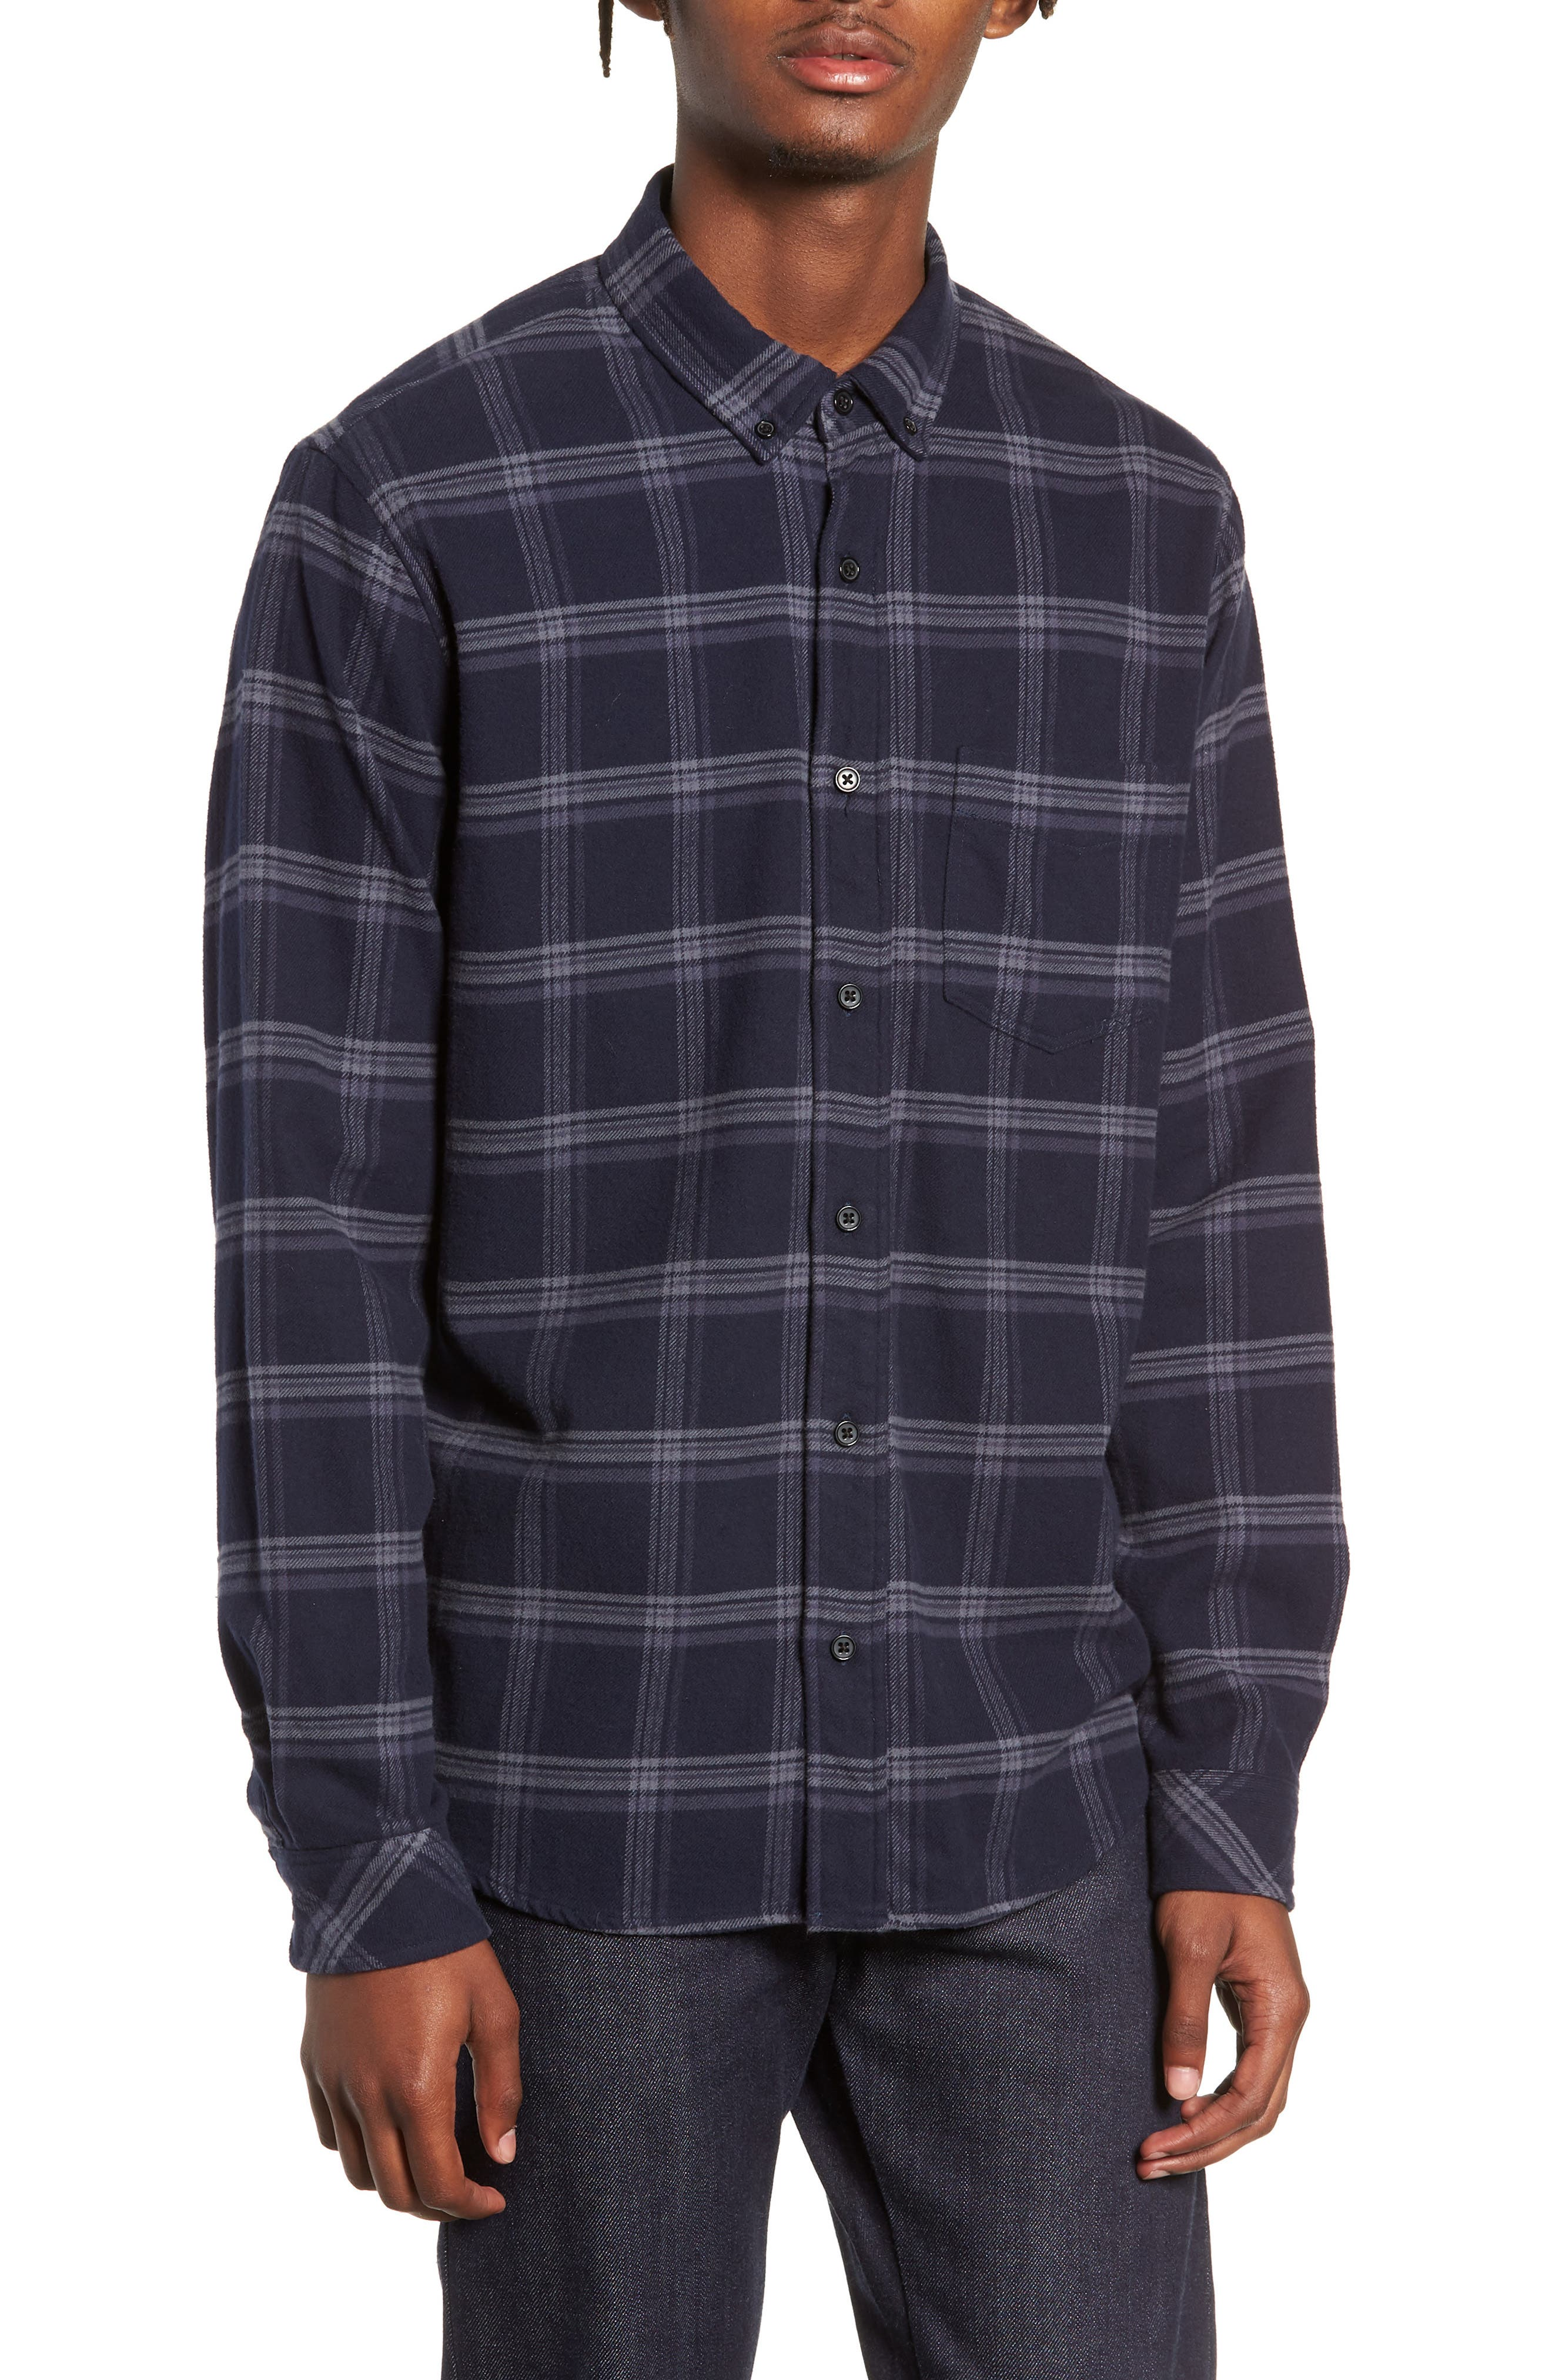 Forrest Slim Fit Plaid Flannel Sport Shirt,                             Main thumbnail 1, color,                             NAVY/HEATHERED CHARCOAL